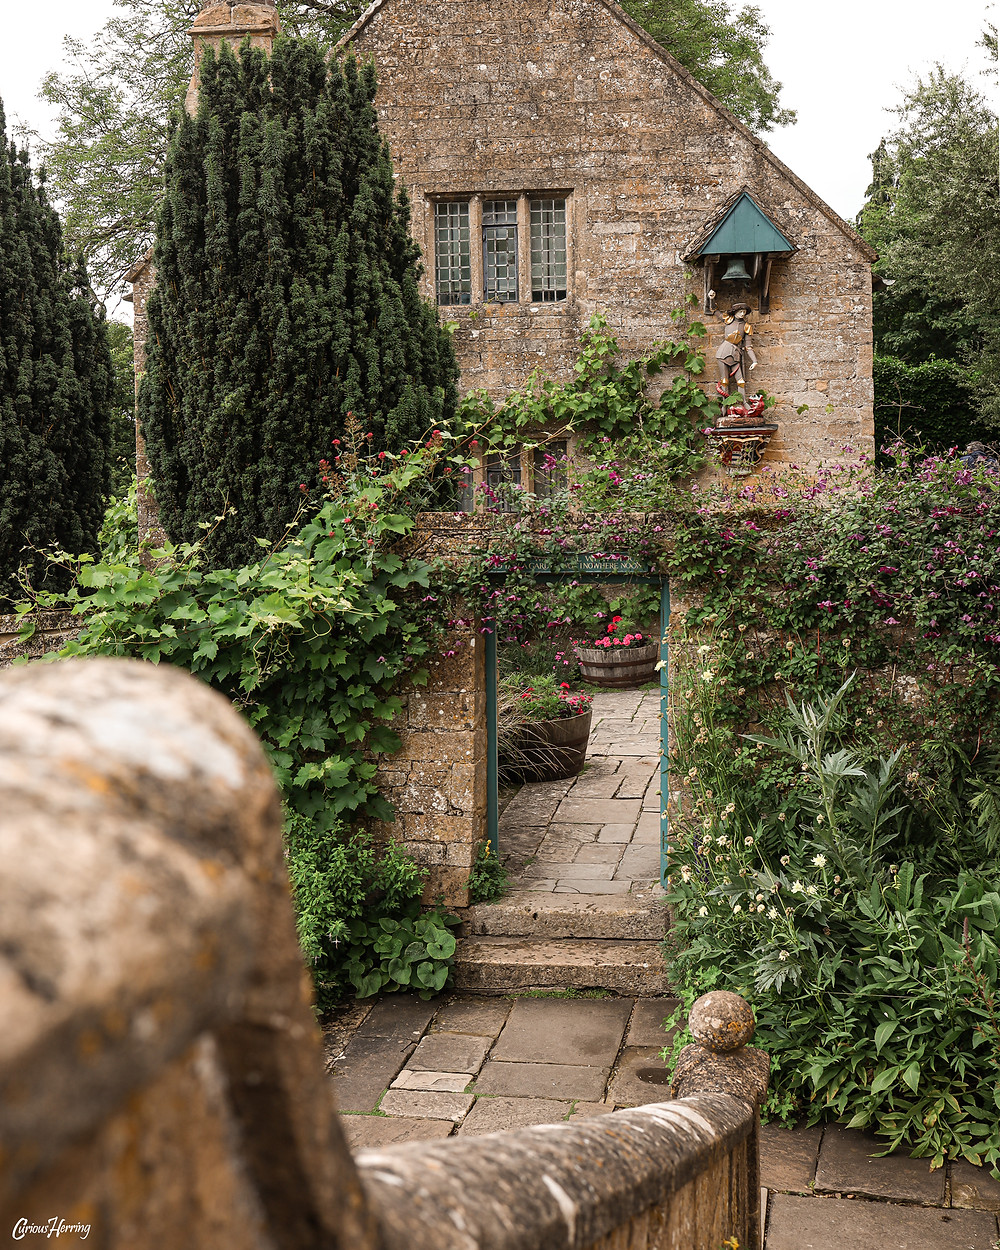 Walls and architecture of Snowshill Manor in the Cotswolds.